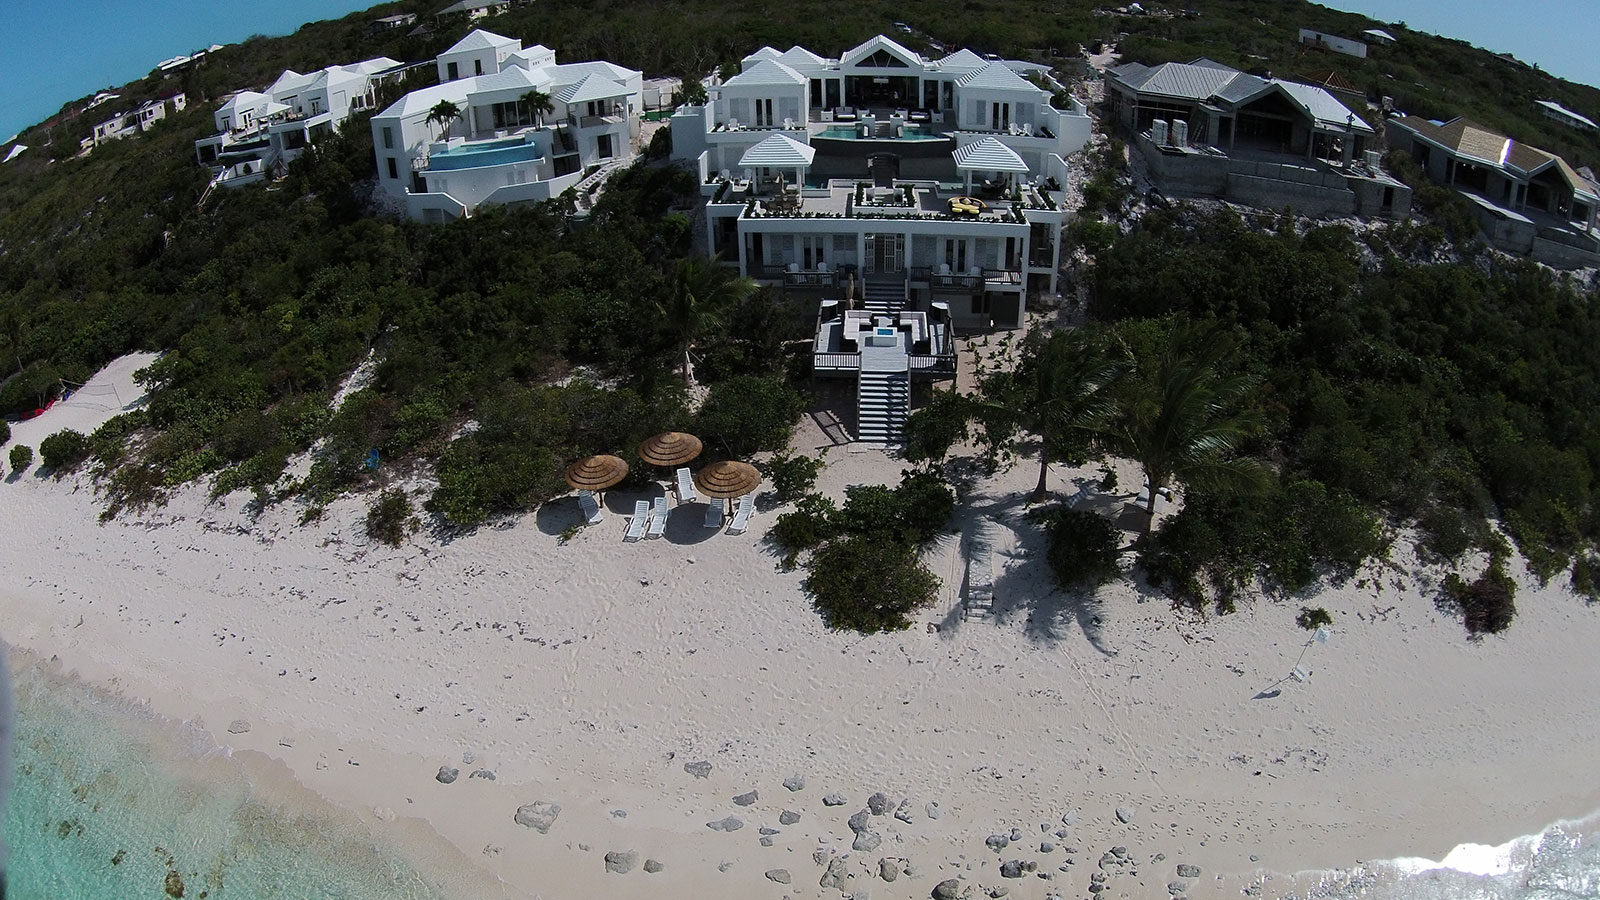 An aerial photograph of this and other Turks and Caicos villa rentals.